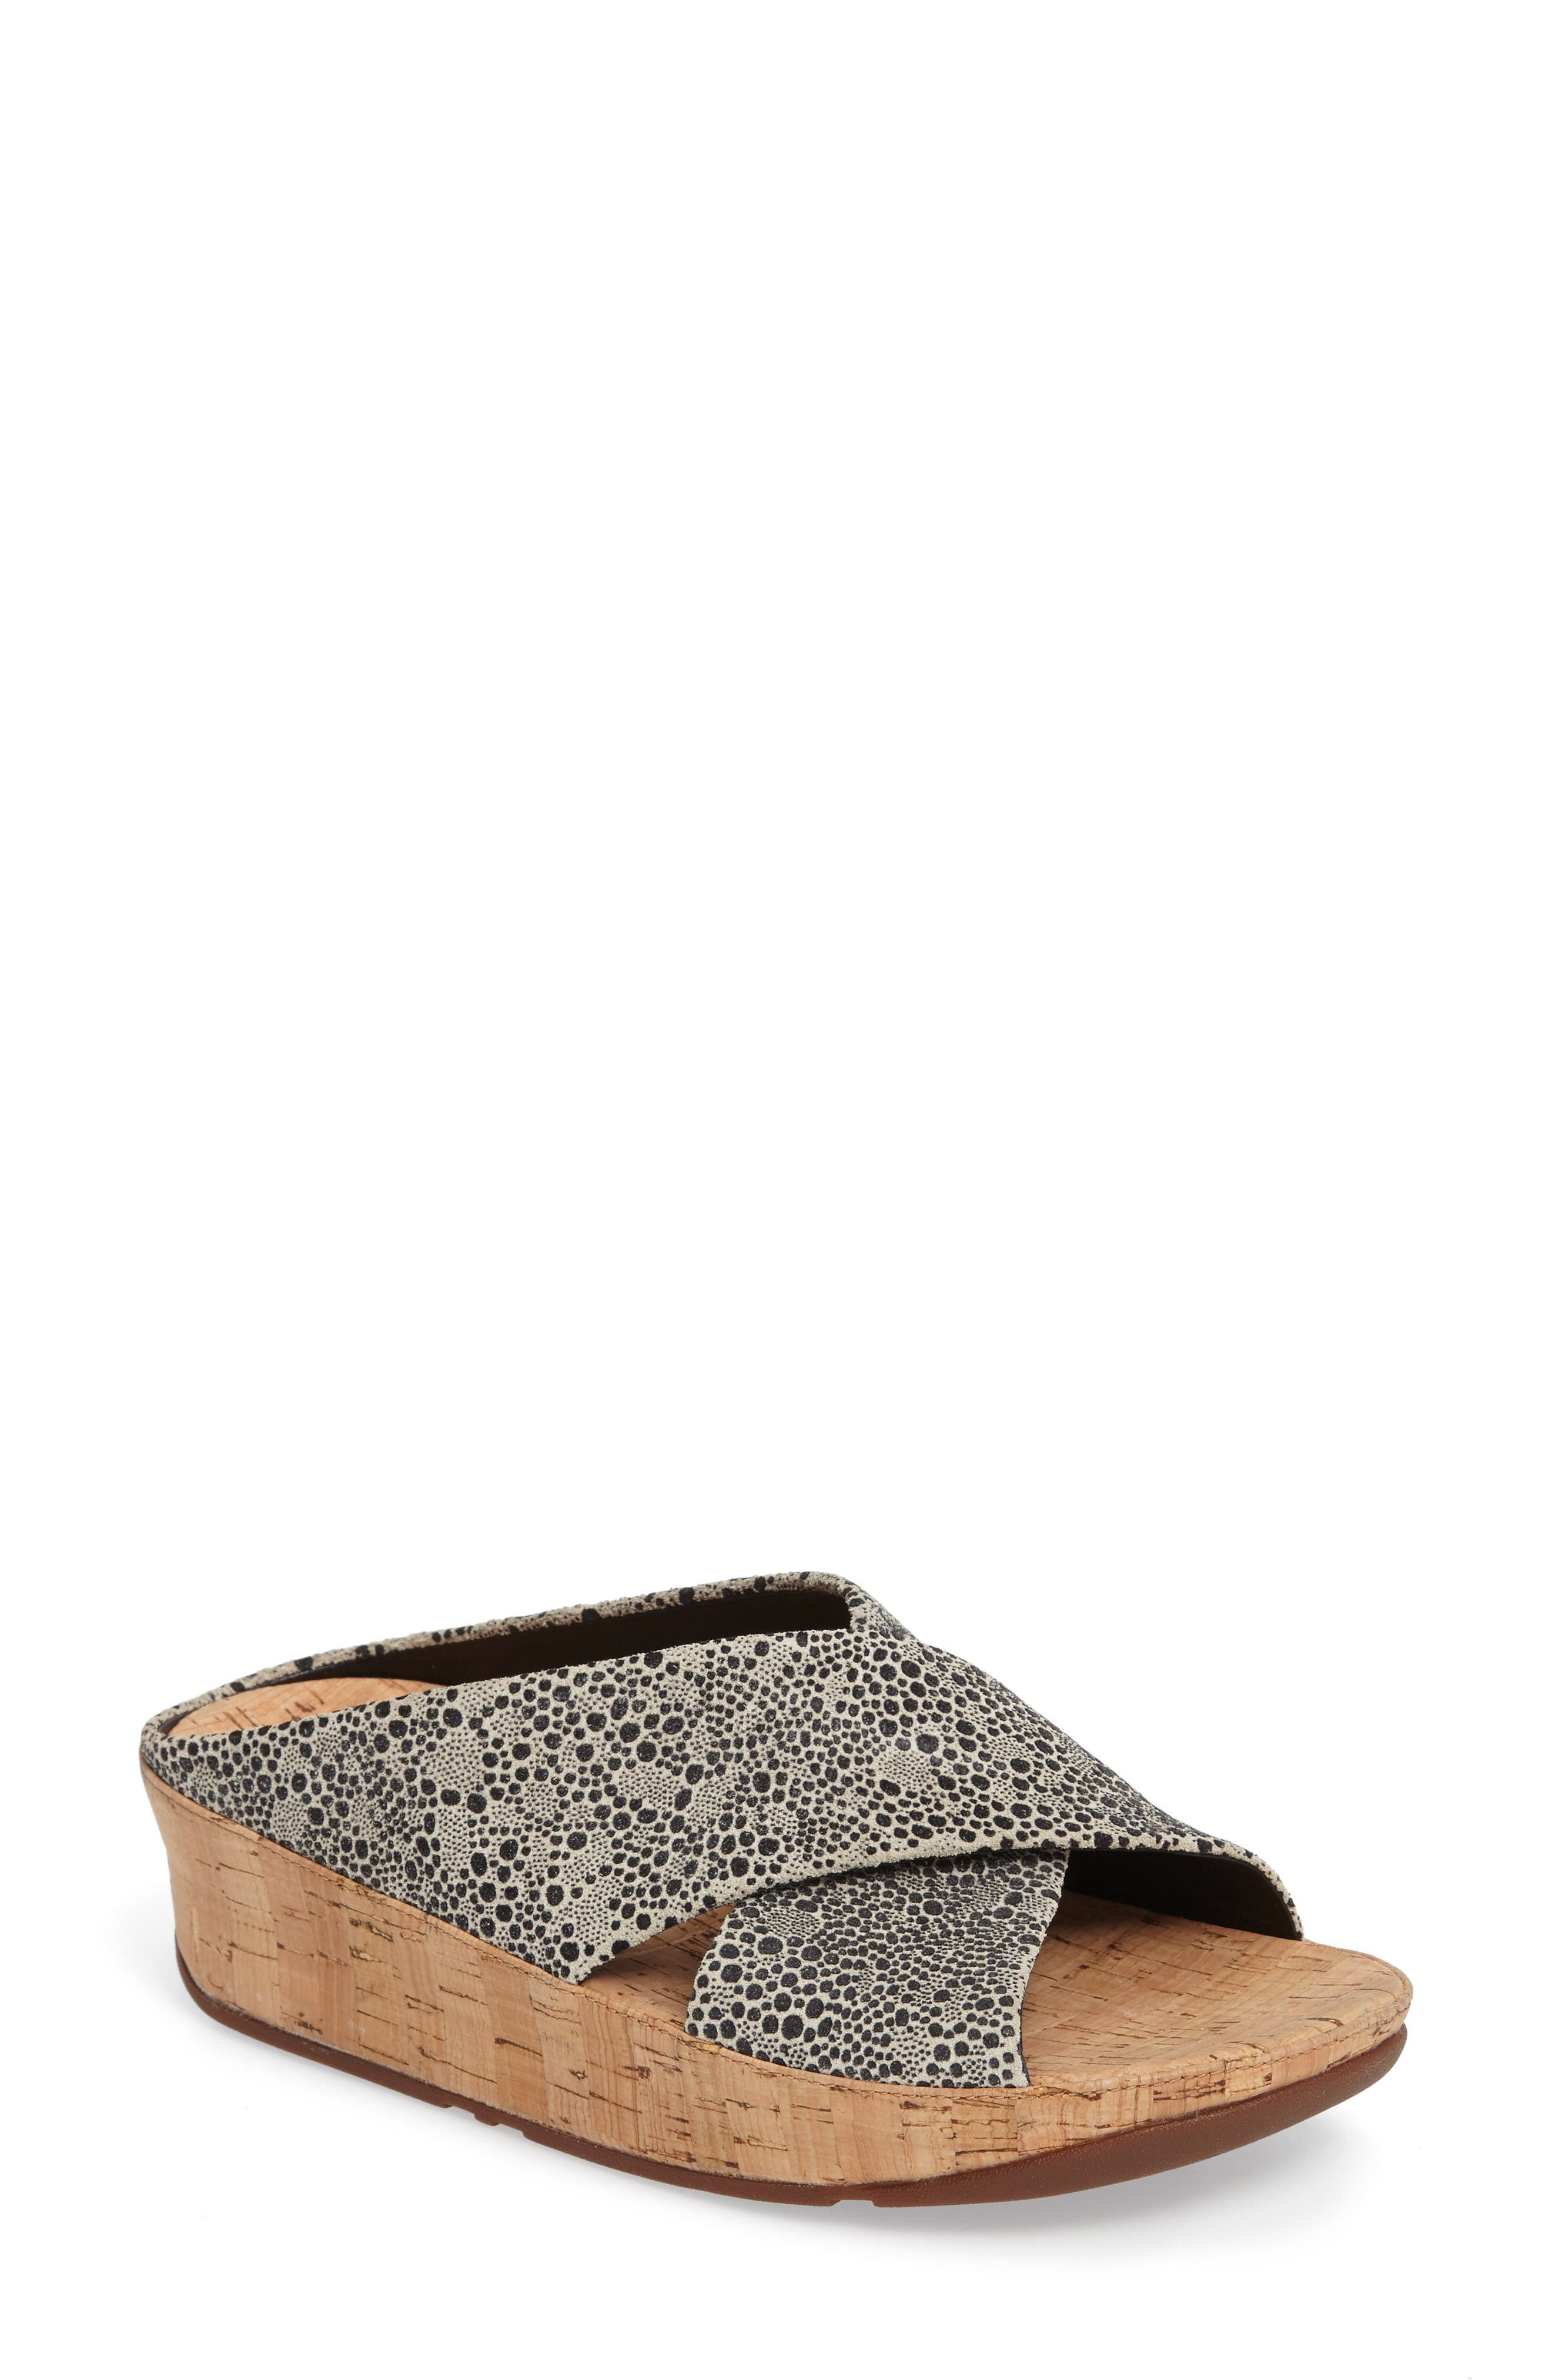 FITFLOP Kys Backless Platform Wedge